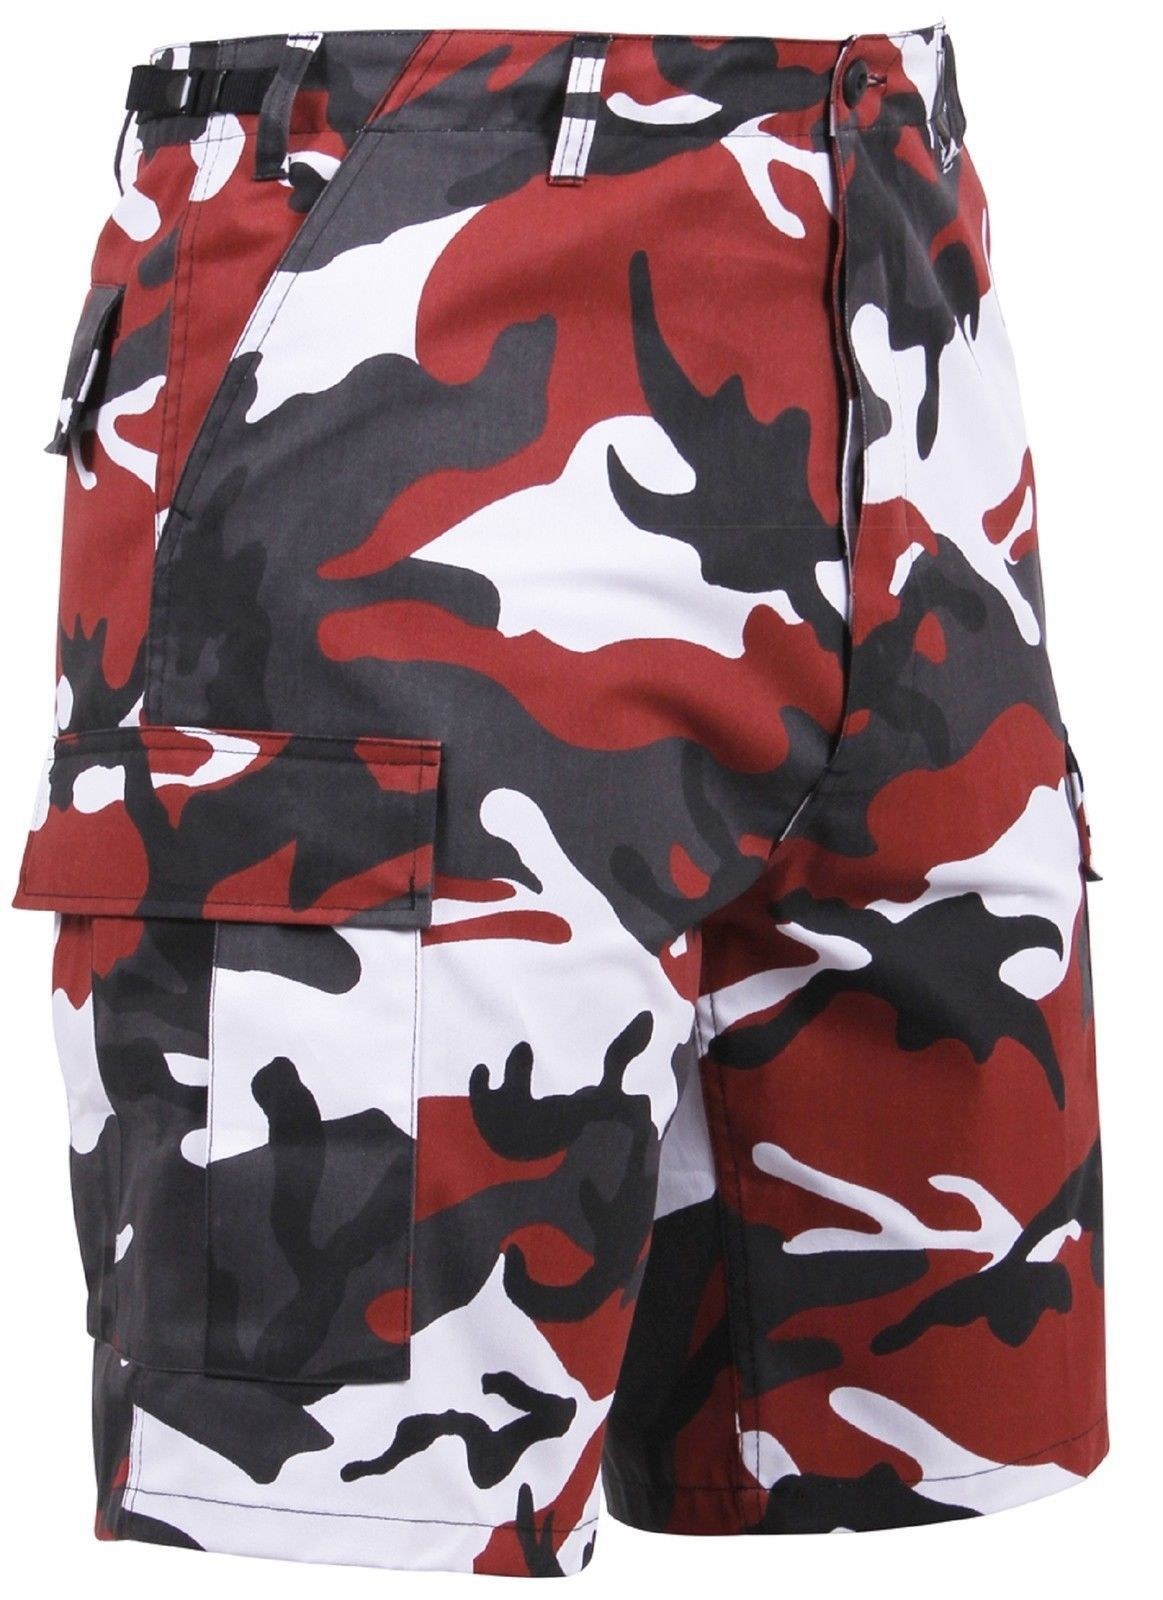 Men's Red Camouflage BDU Cargo Shorts - Black, Red & White Camo ...